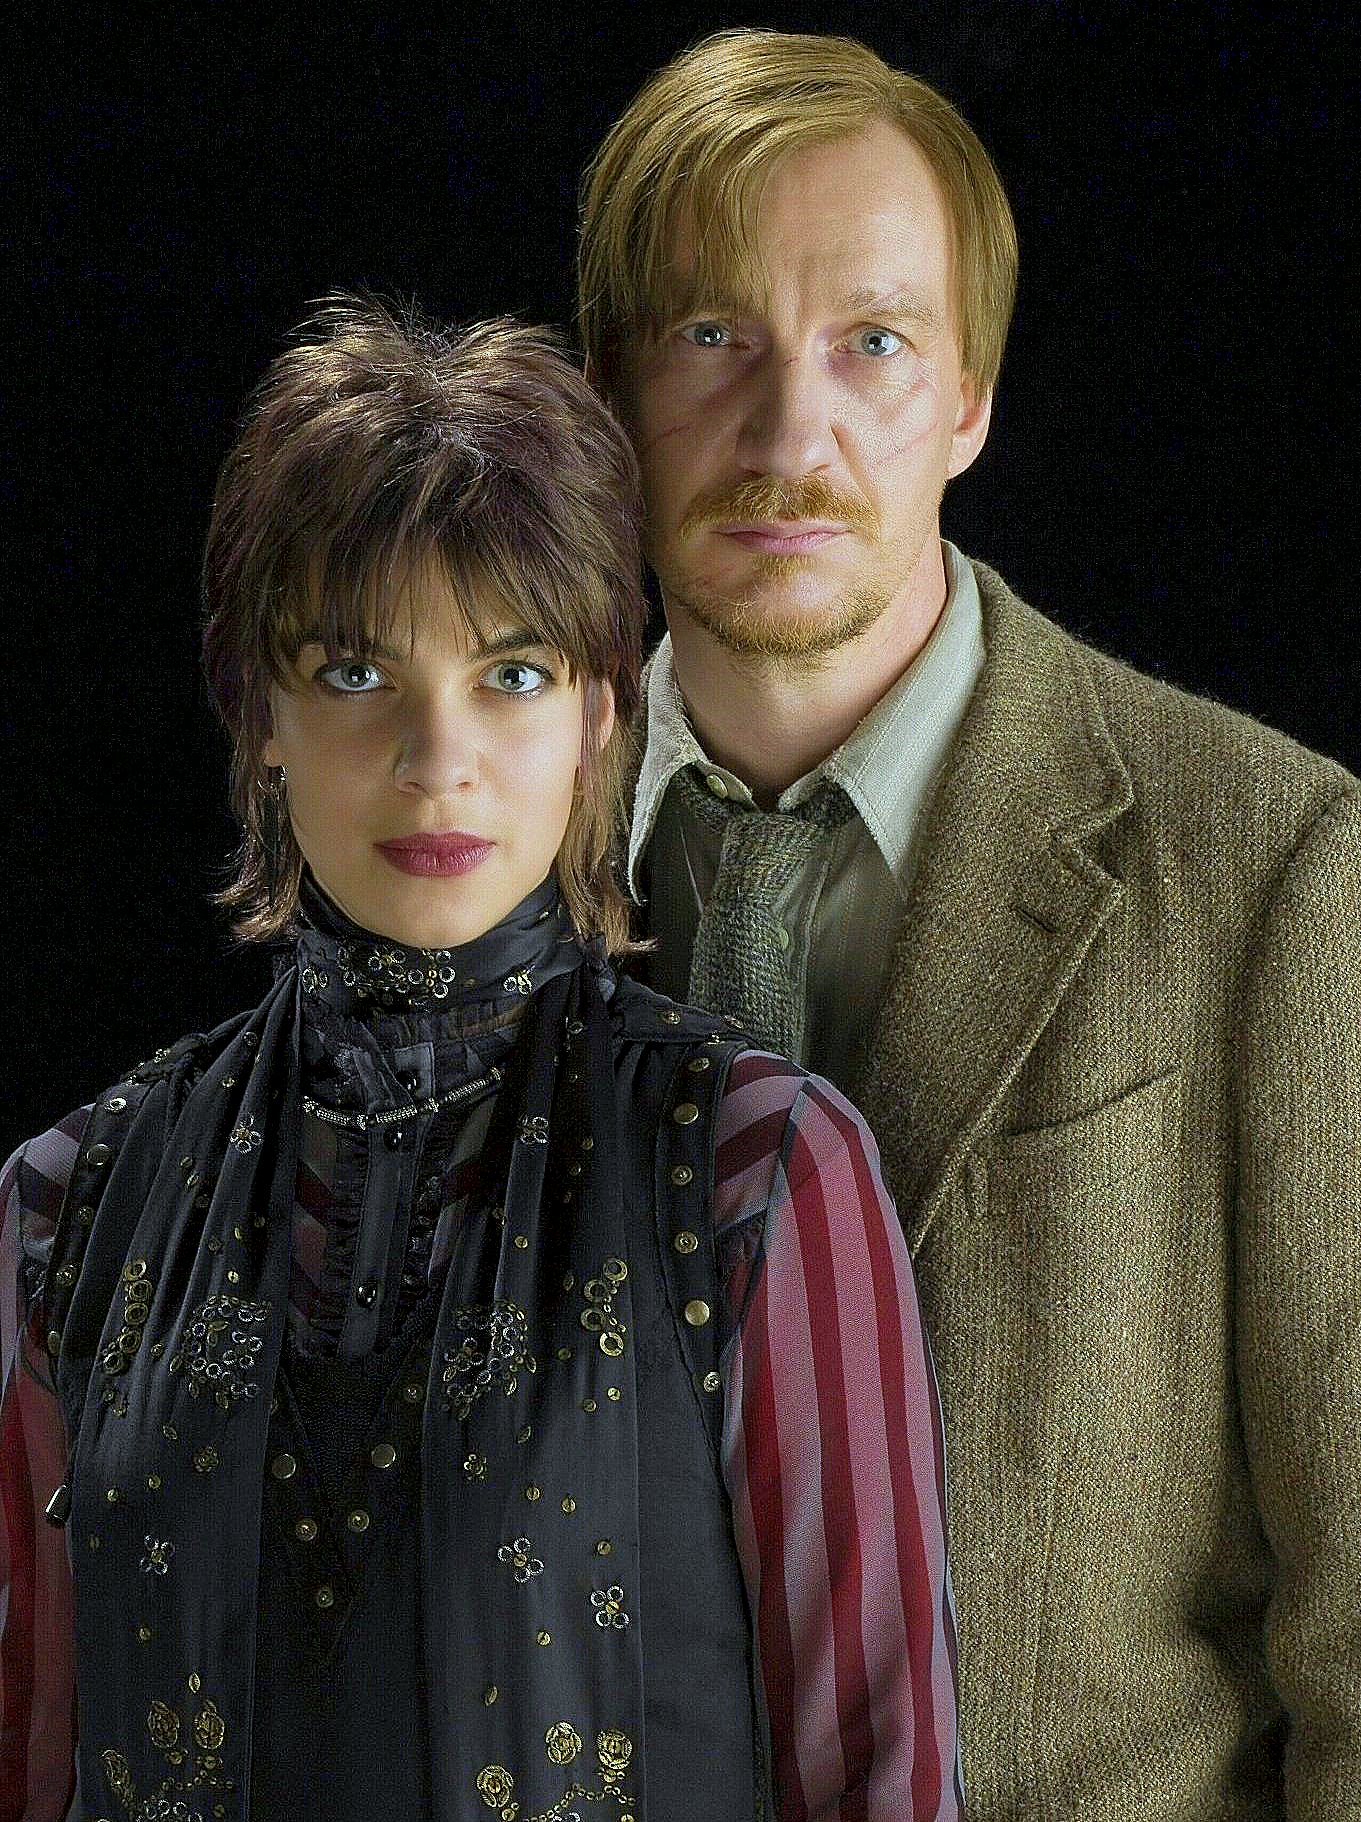 tonks and lupin relationship